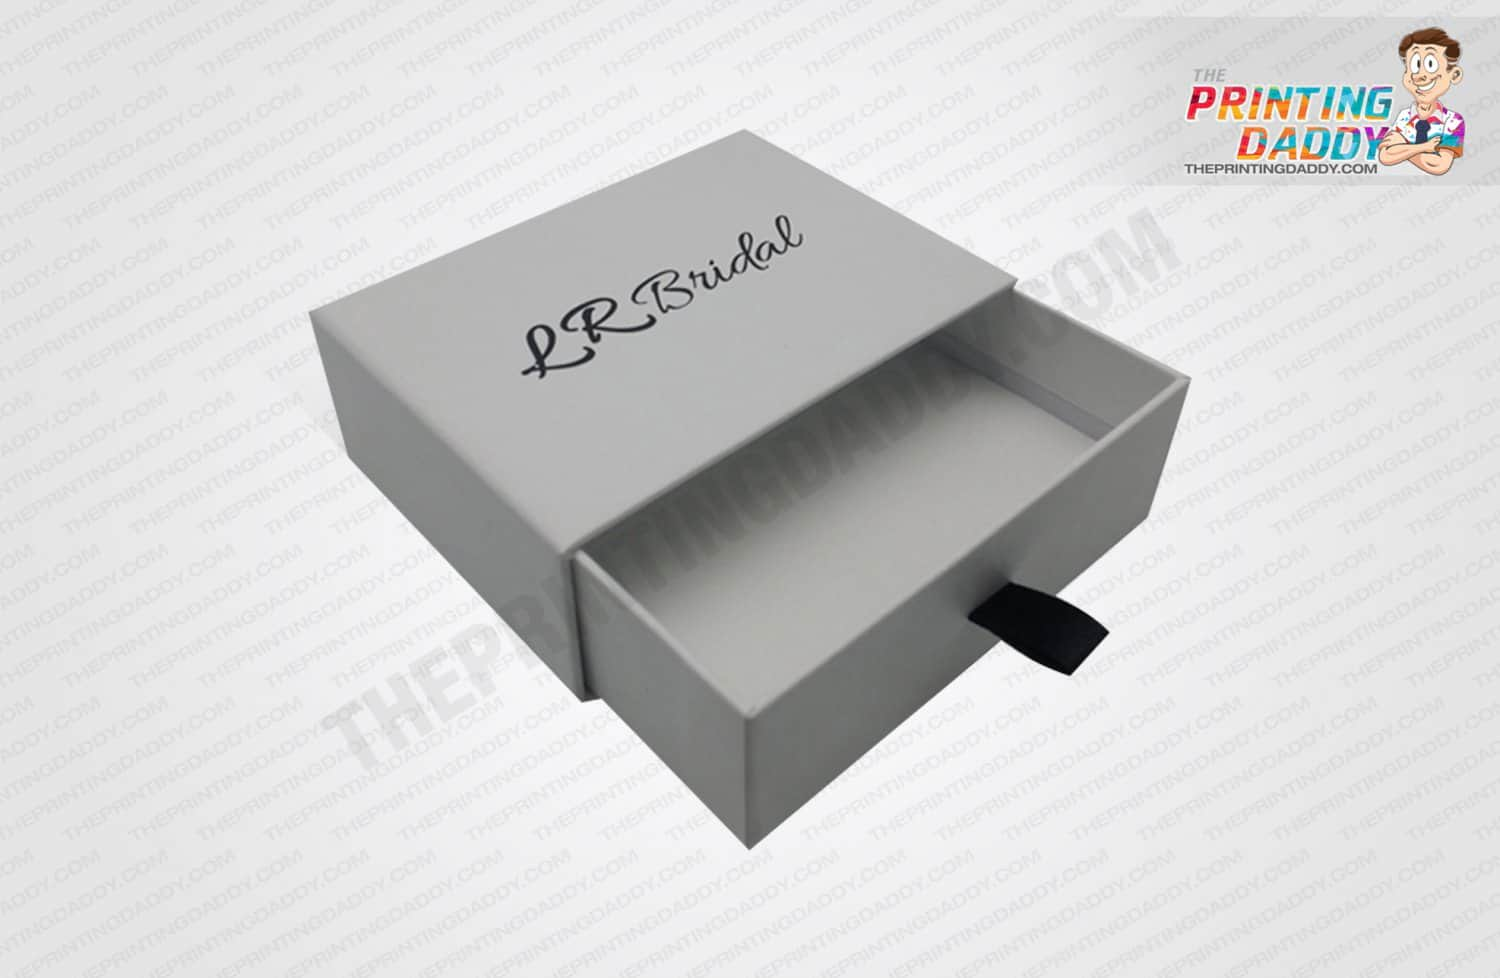 White Phone Drawer Style Box with Insert The Printing Daddy